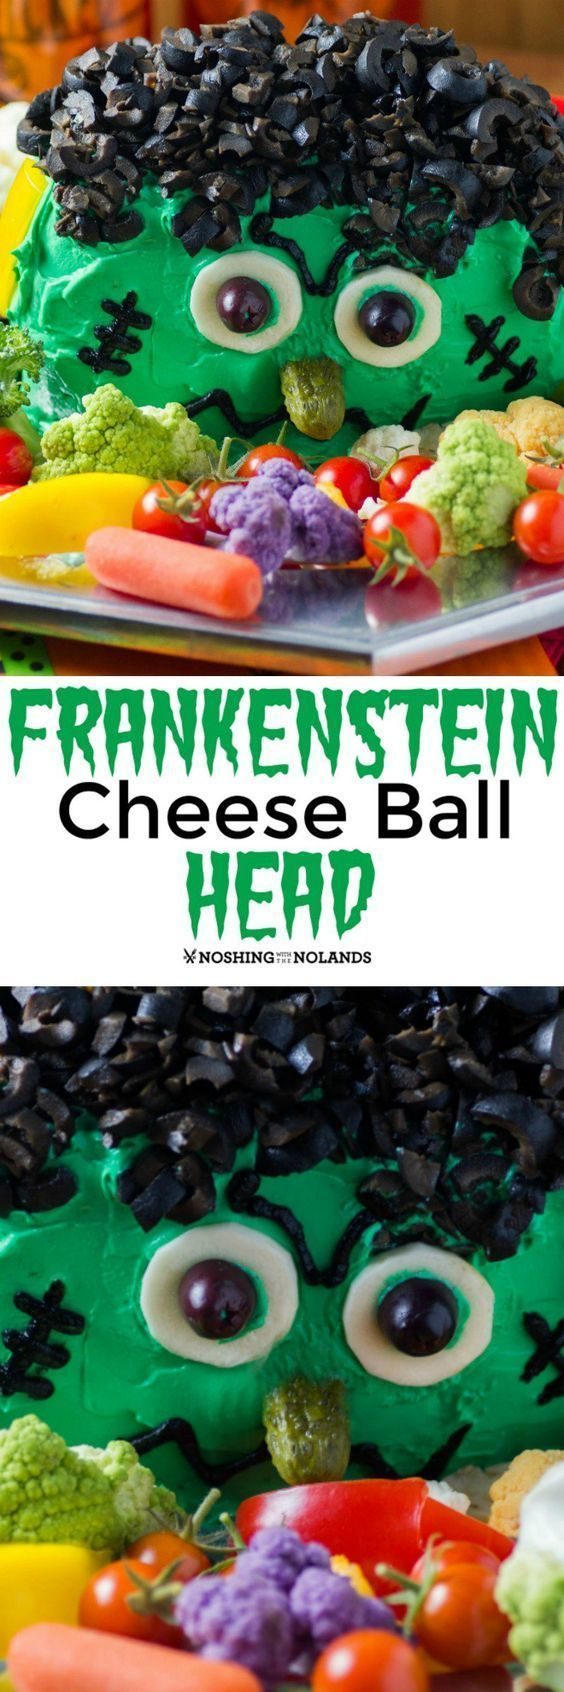 Frankenstein Cheese Ball Head by Noshing With The Nolands will be a hit at any Halloween party with a creamy dip inside!